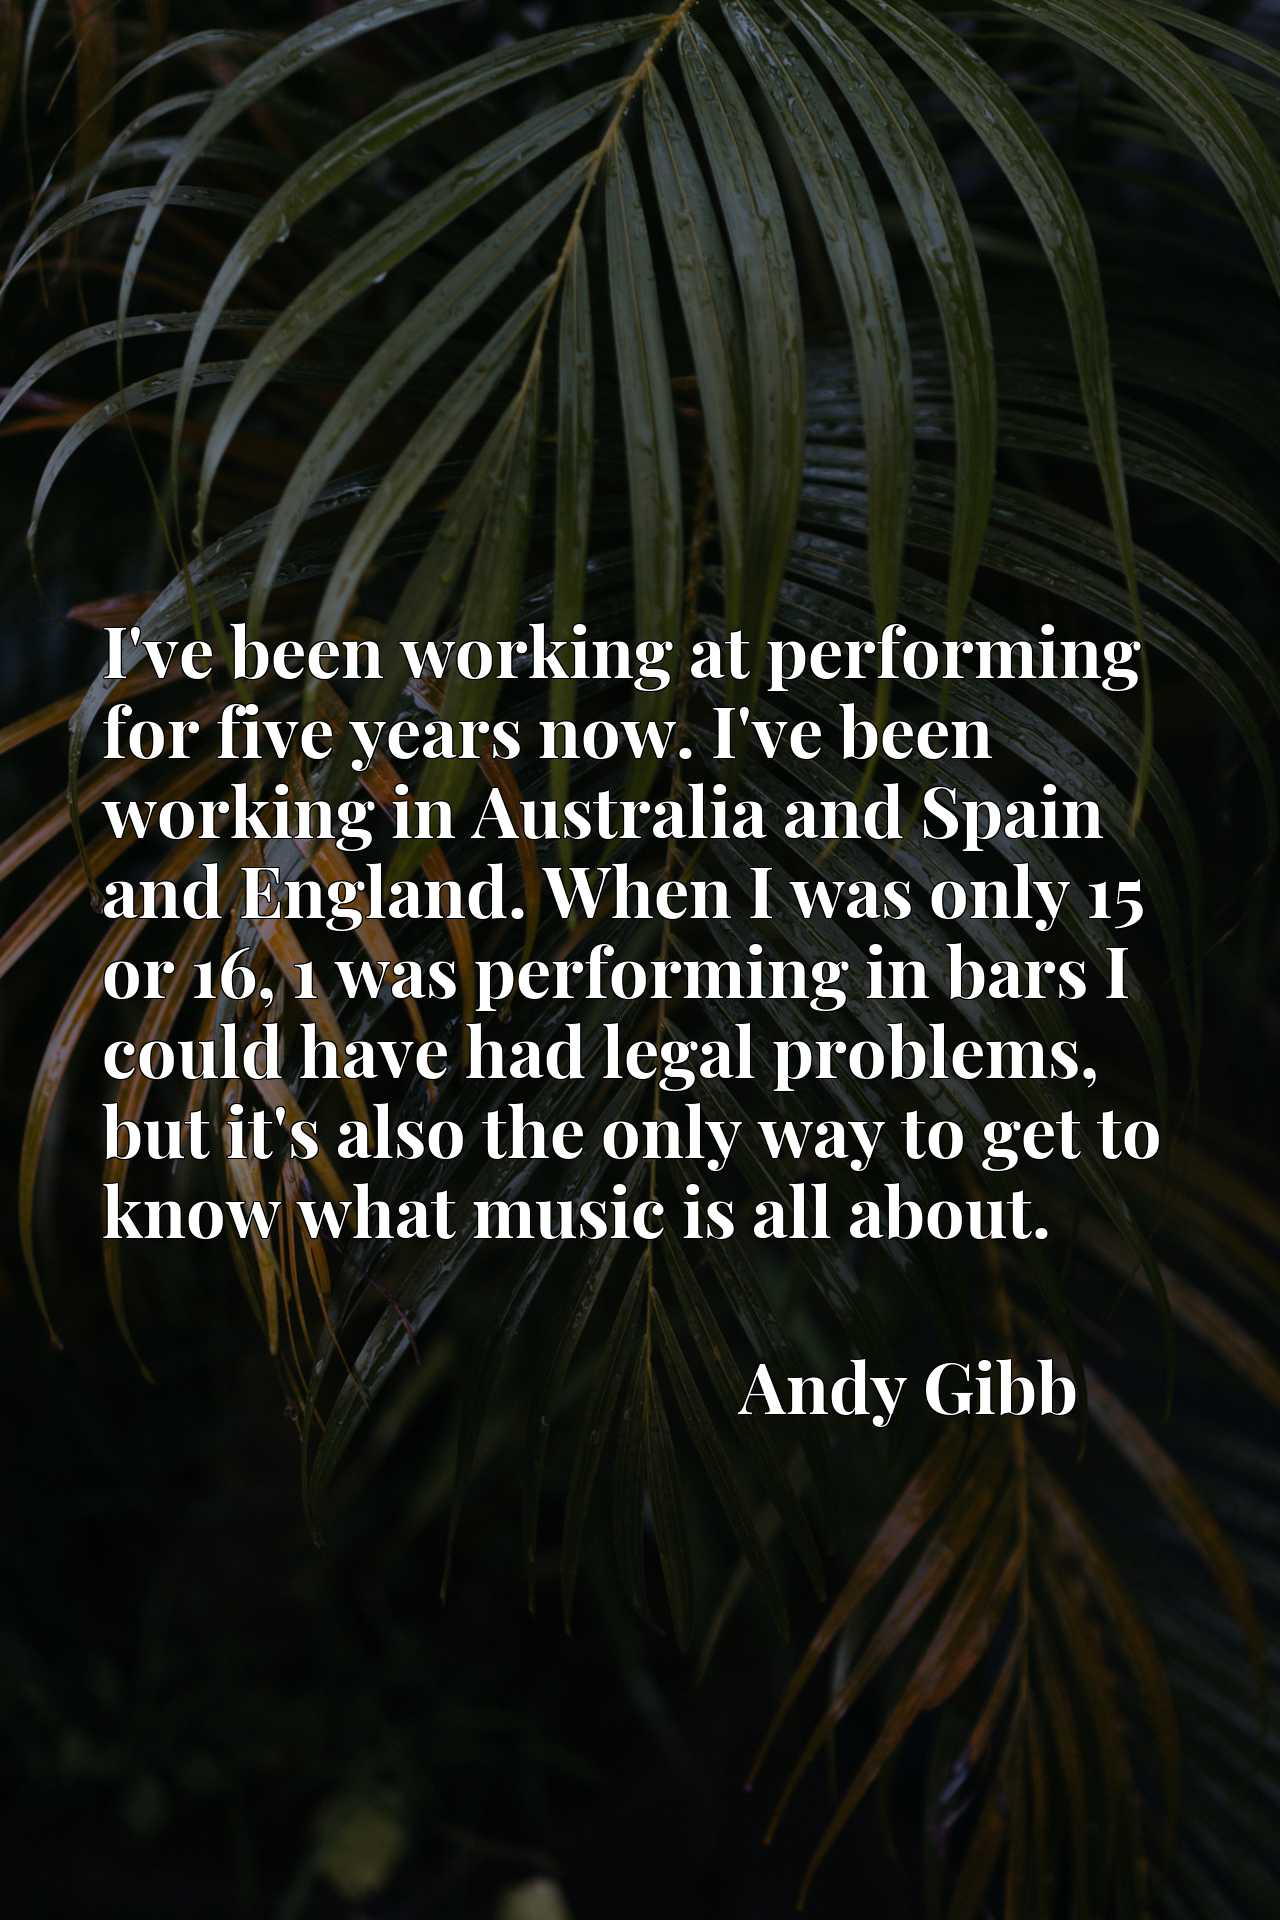 I've been working at performing for five years now. I've been working in Australia and Spain and England. When I was only 15 or 16, 1 was performing in bars I could have had legal problems, but it's also the only way to get to know what music is all about.